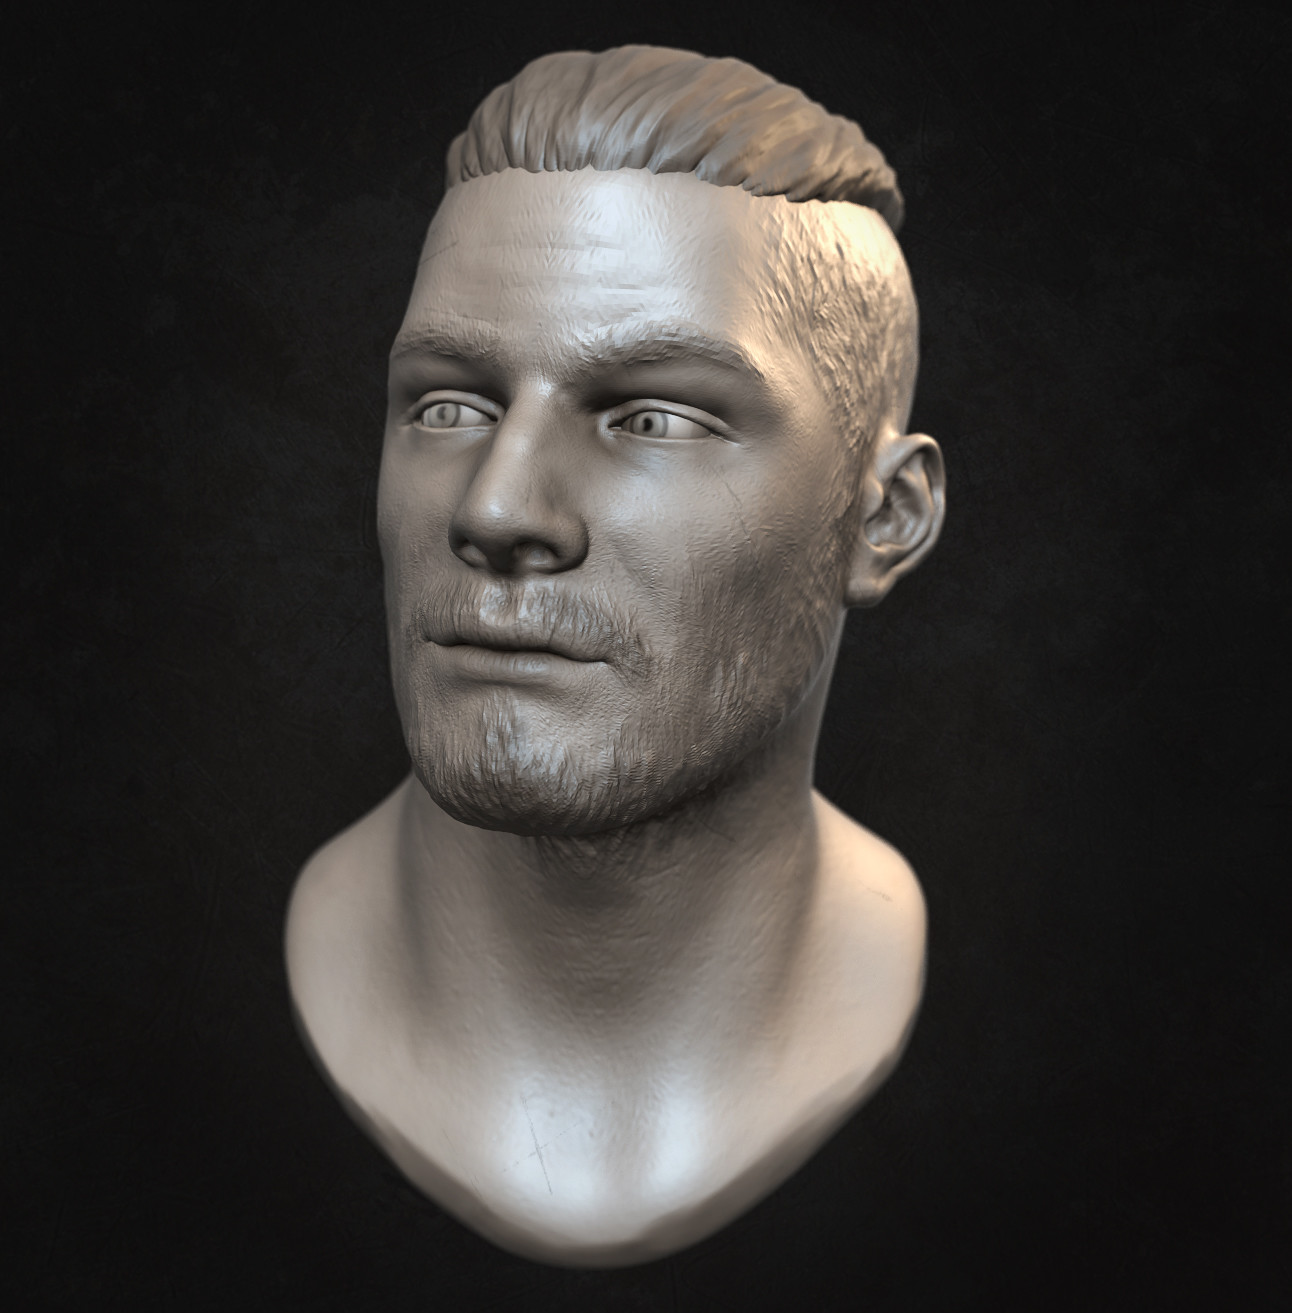 Bjorn speed sculpt